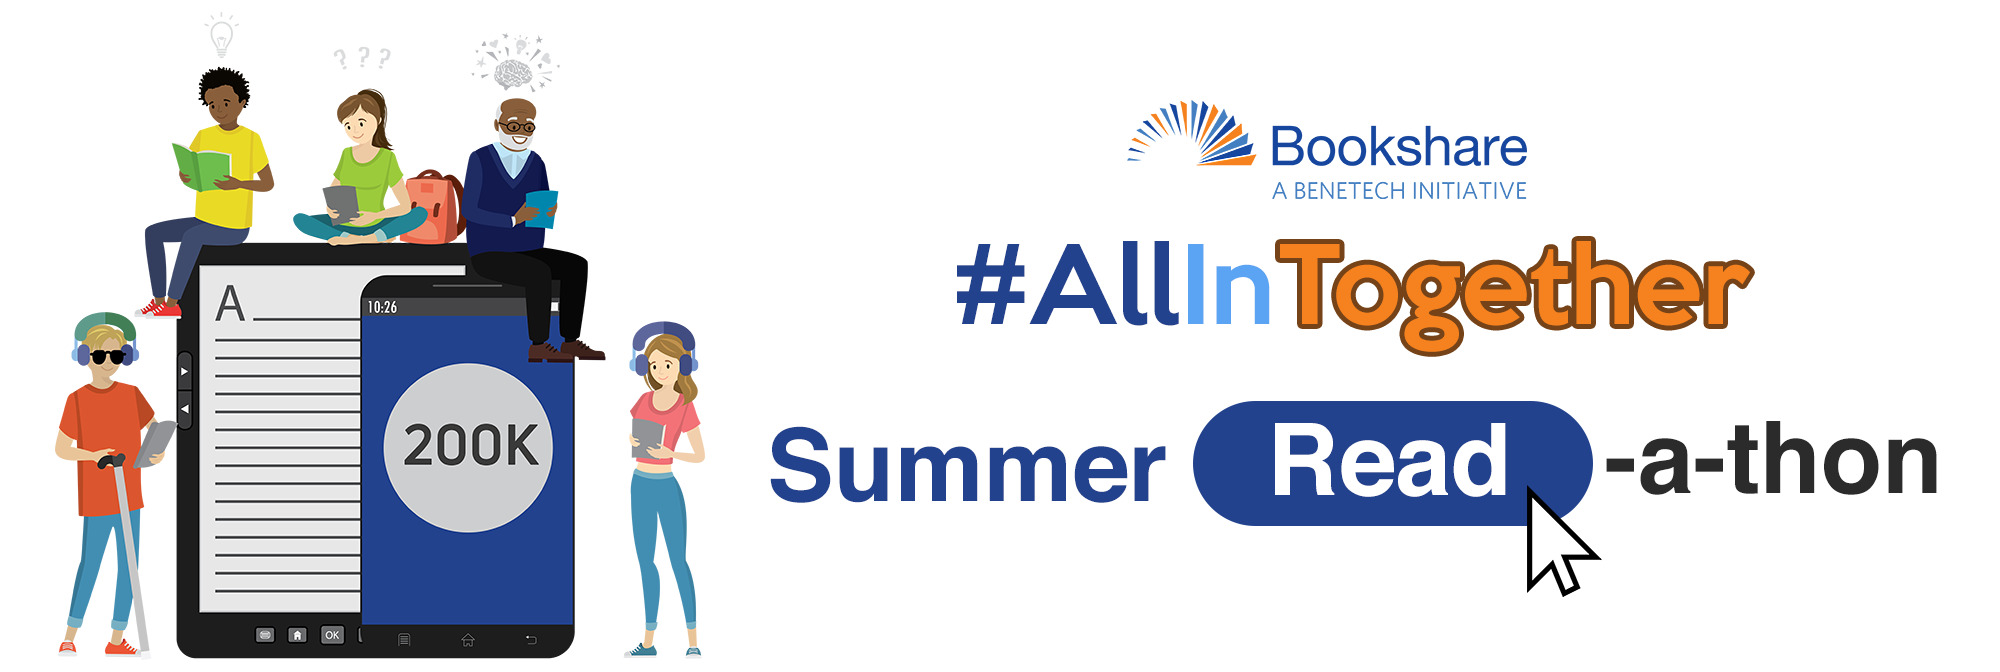 All in Together Summer Read-a-thon banner with illustration of Bookshare members reading ebooks.